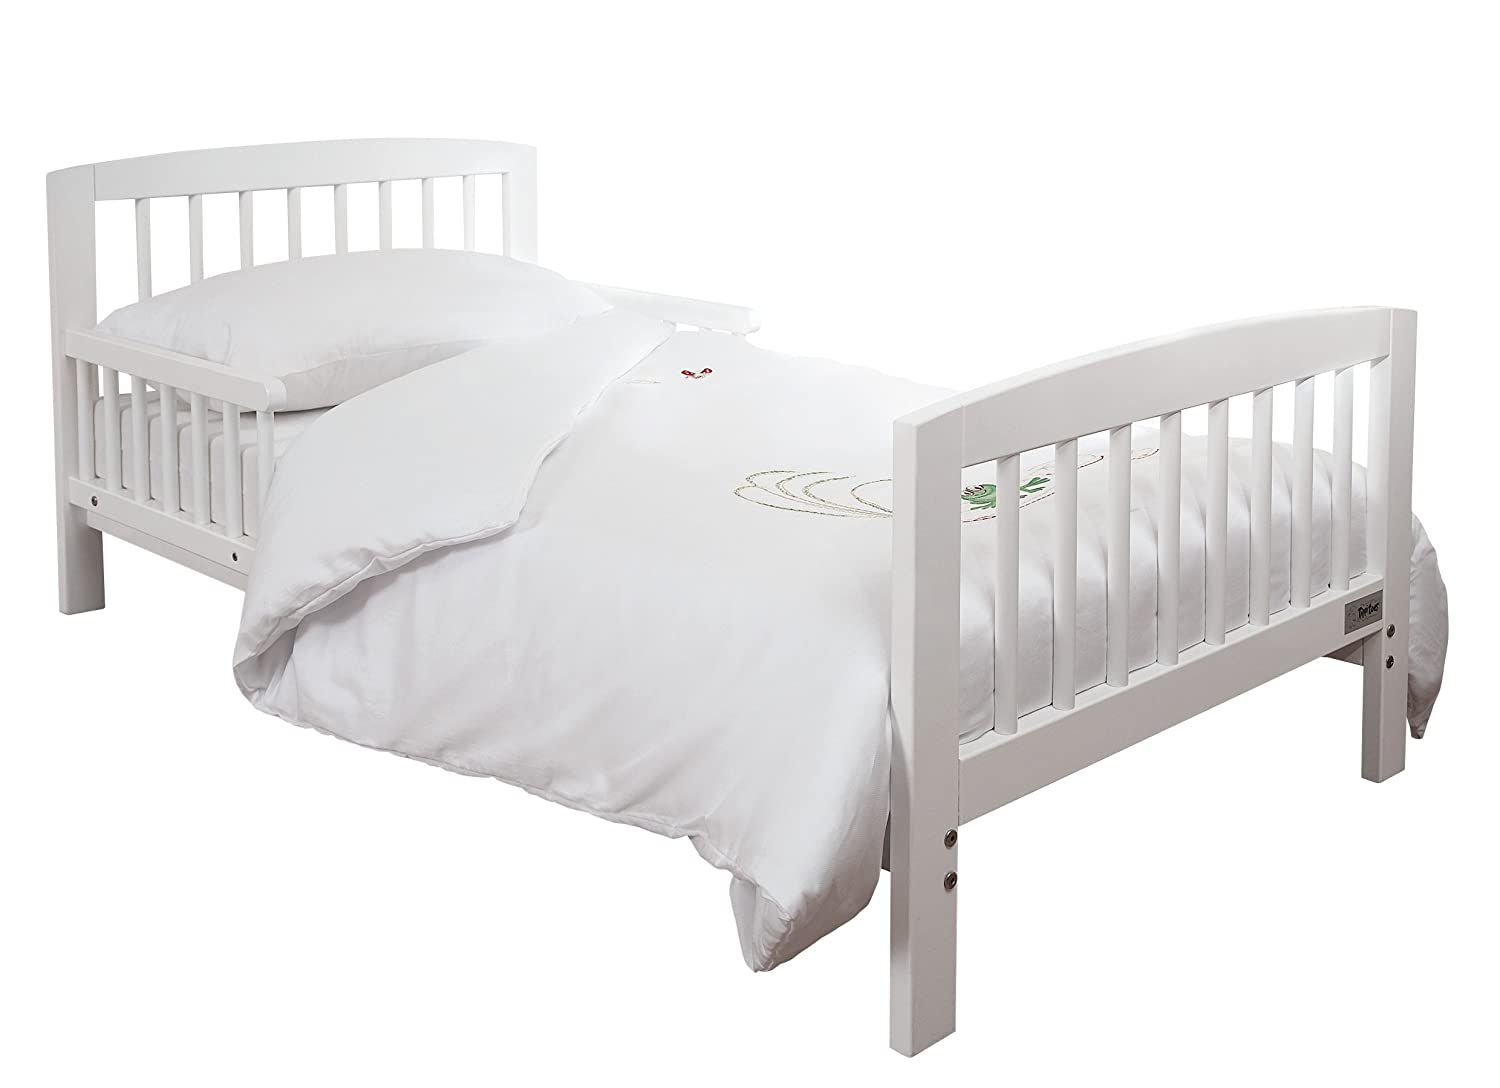 Baby cot with mattress gulliver bed frame and guard rail for Lit junior ikea